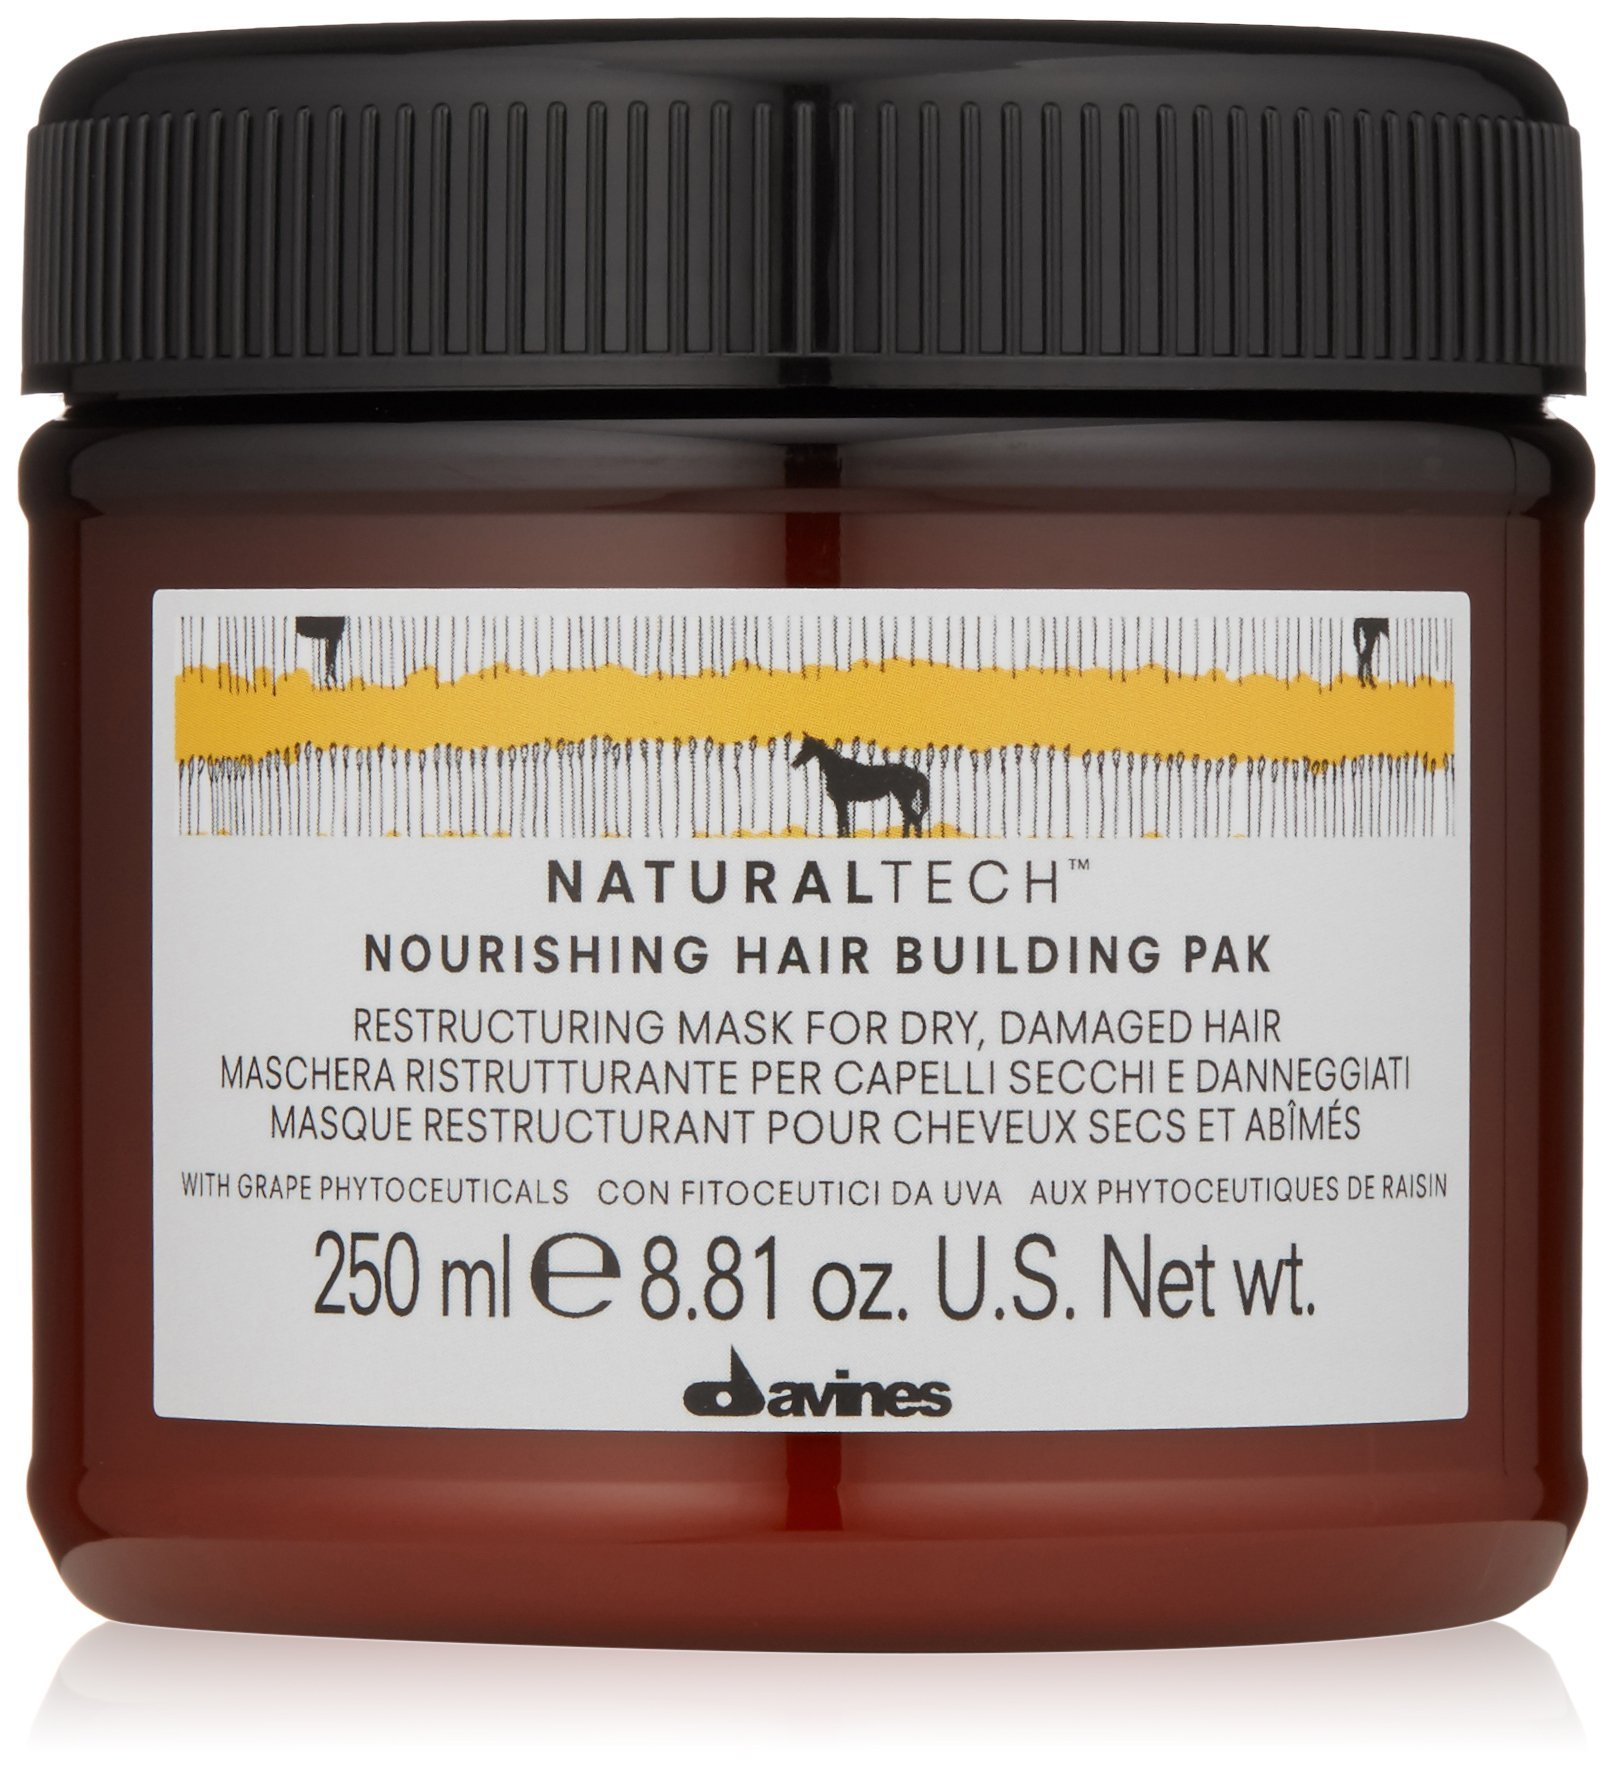 Davines Naturaltech Nourishing Hair Building Pak 250 ml product image